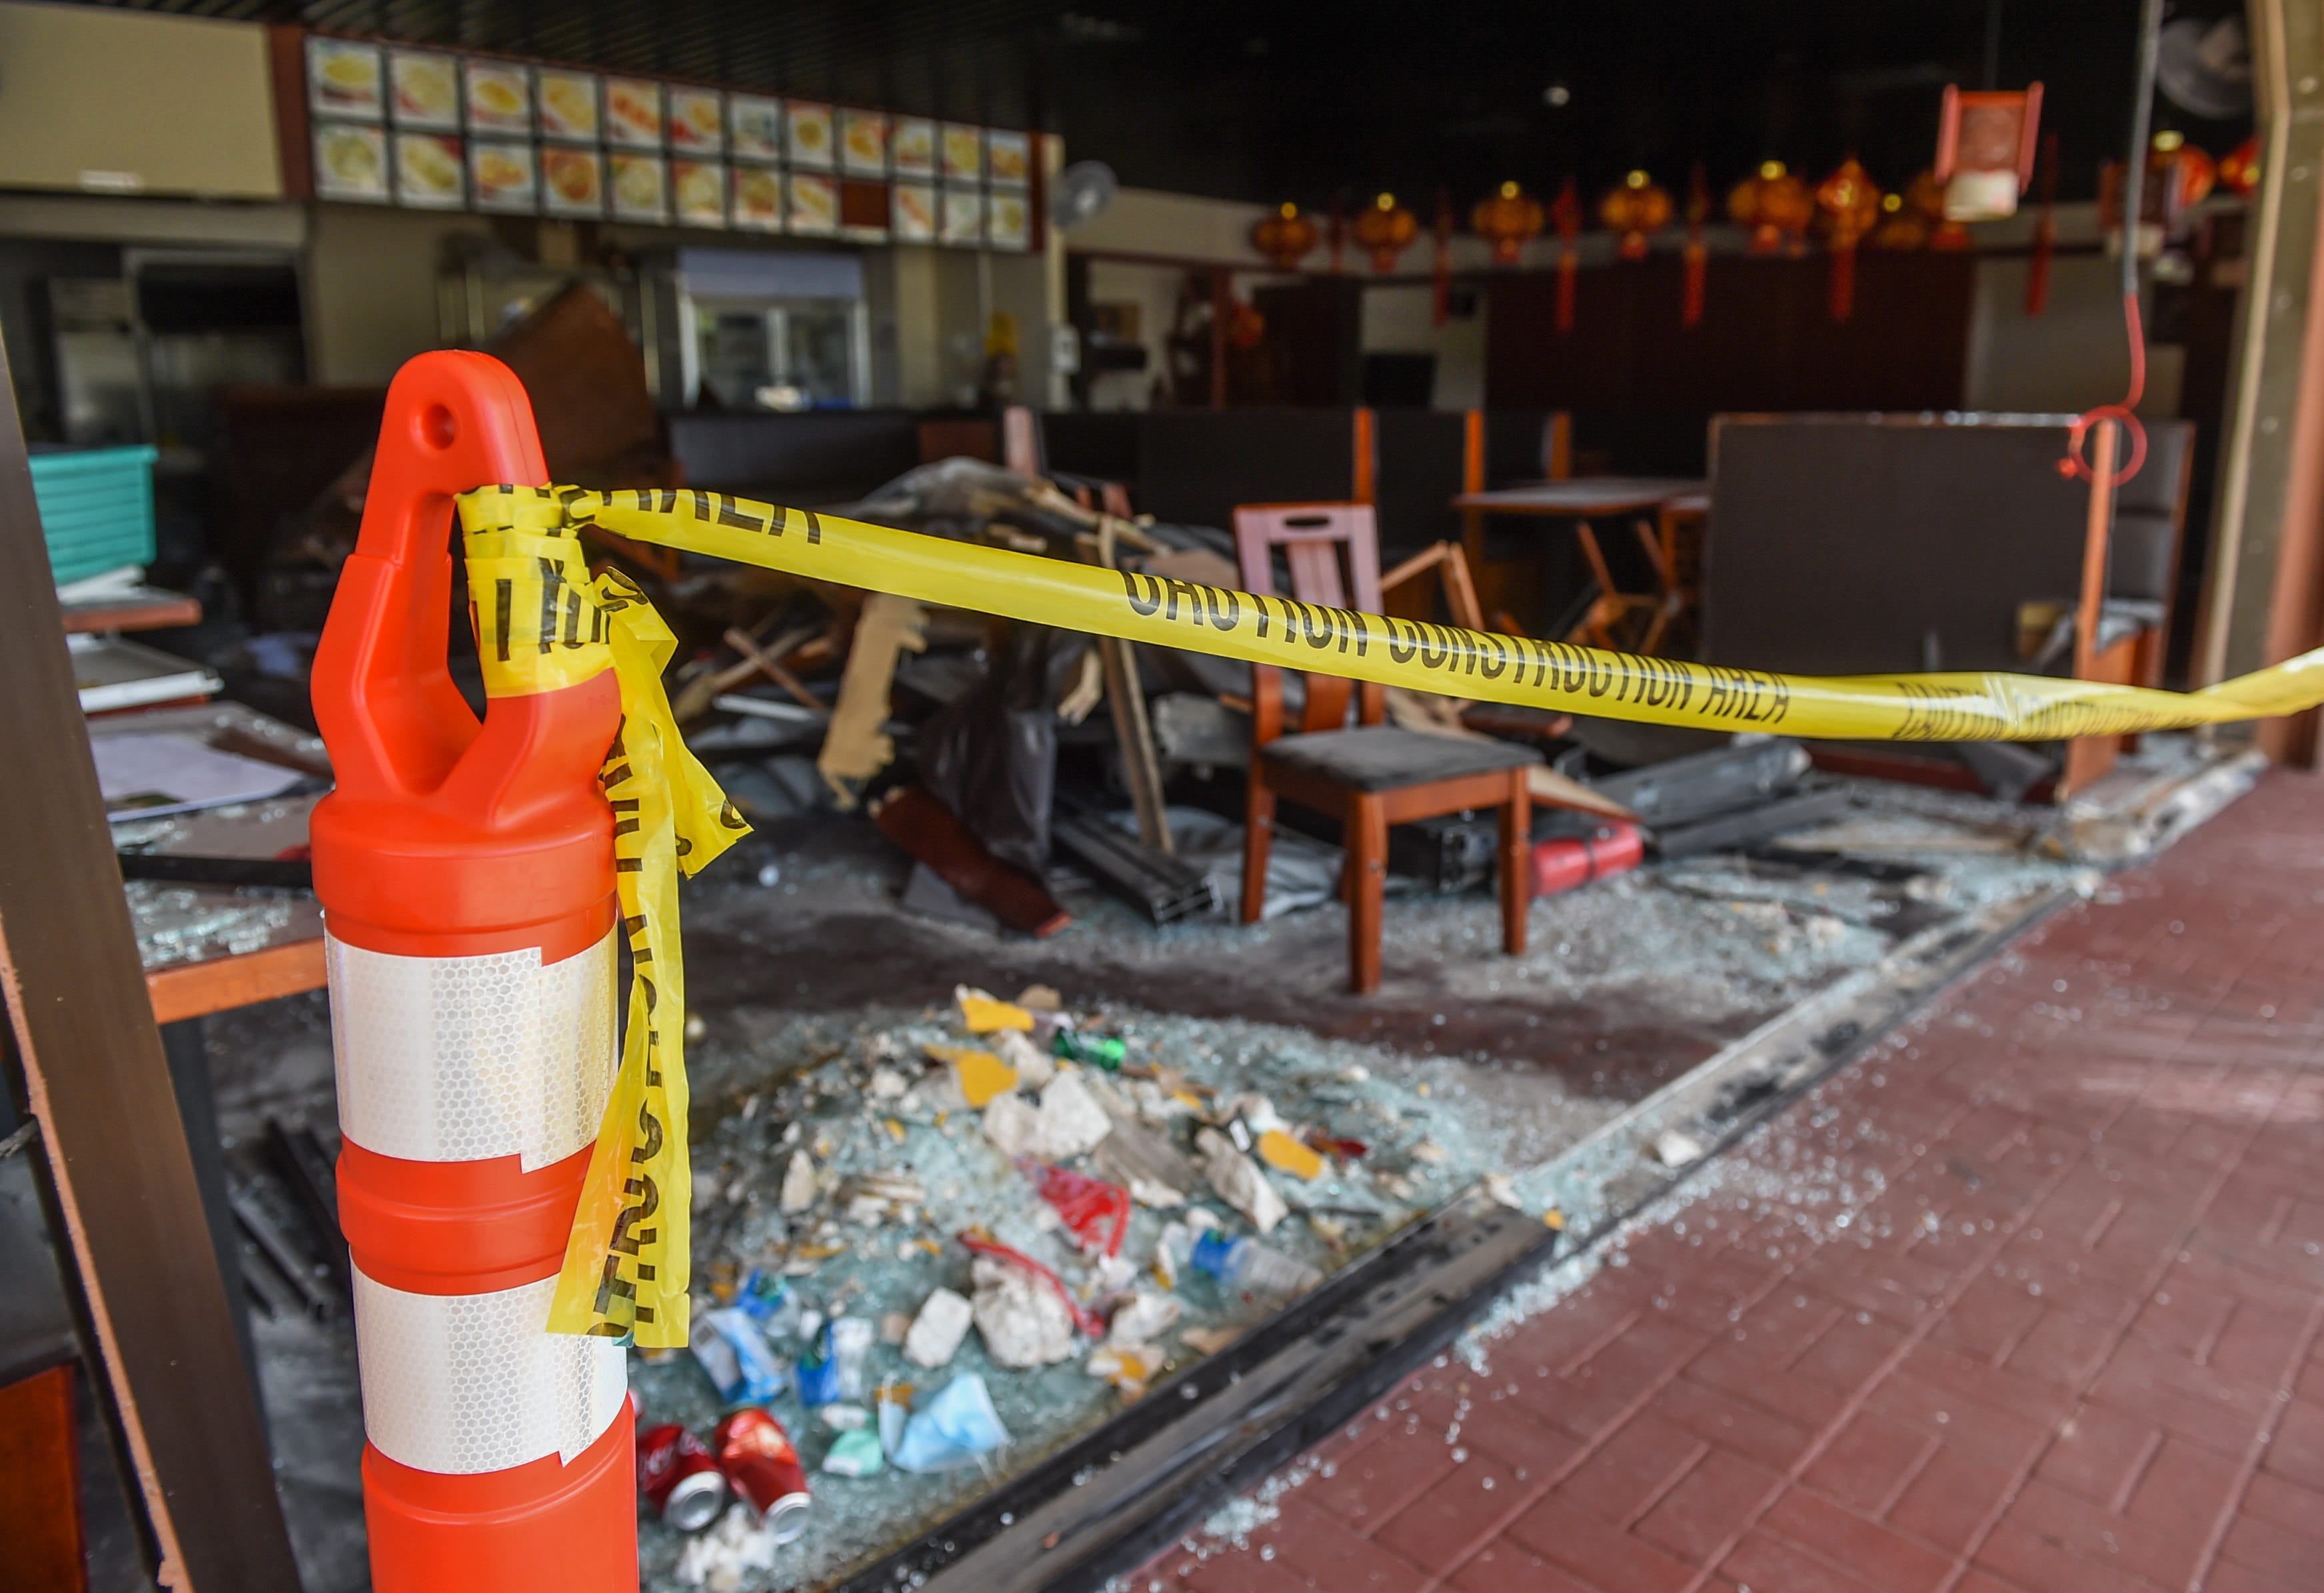 Caution tape and cones block off a crash scene at Jerry Kitchen in Tamuning in this March 1 file photo. The Guam Police Department has provided no updates to an ongoing investigation involving a red Jeep that crashed into the restaurant Feb. 25.